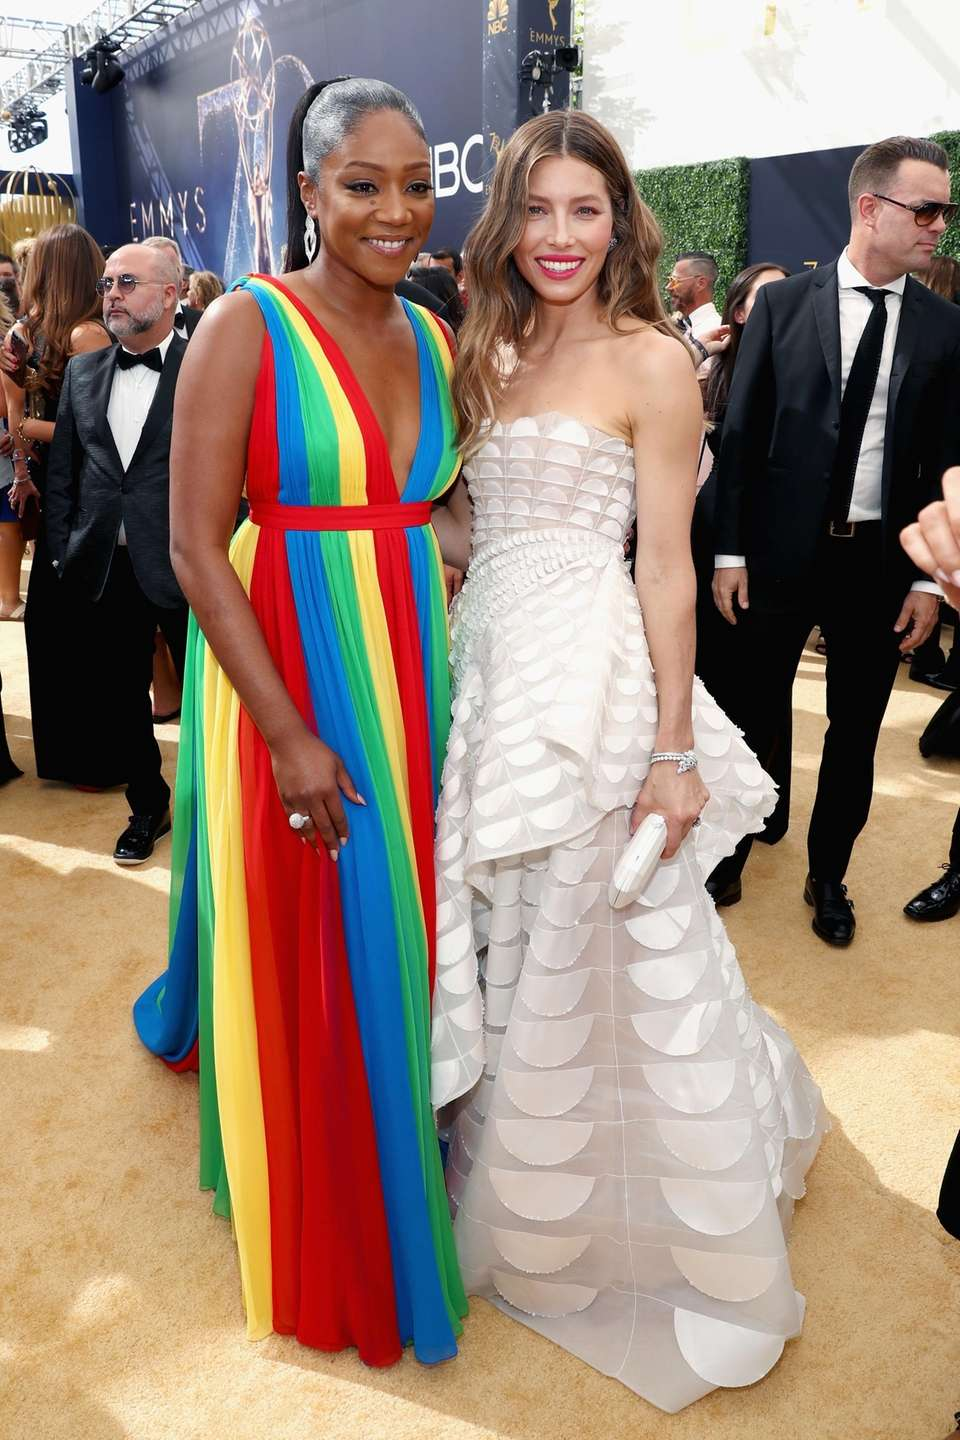 Tiffany Haddish, left, and Jessica Biel arrive for